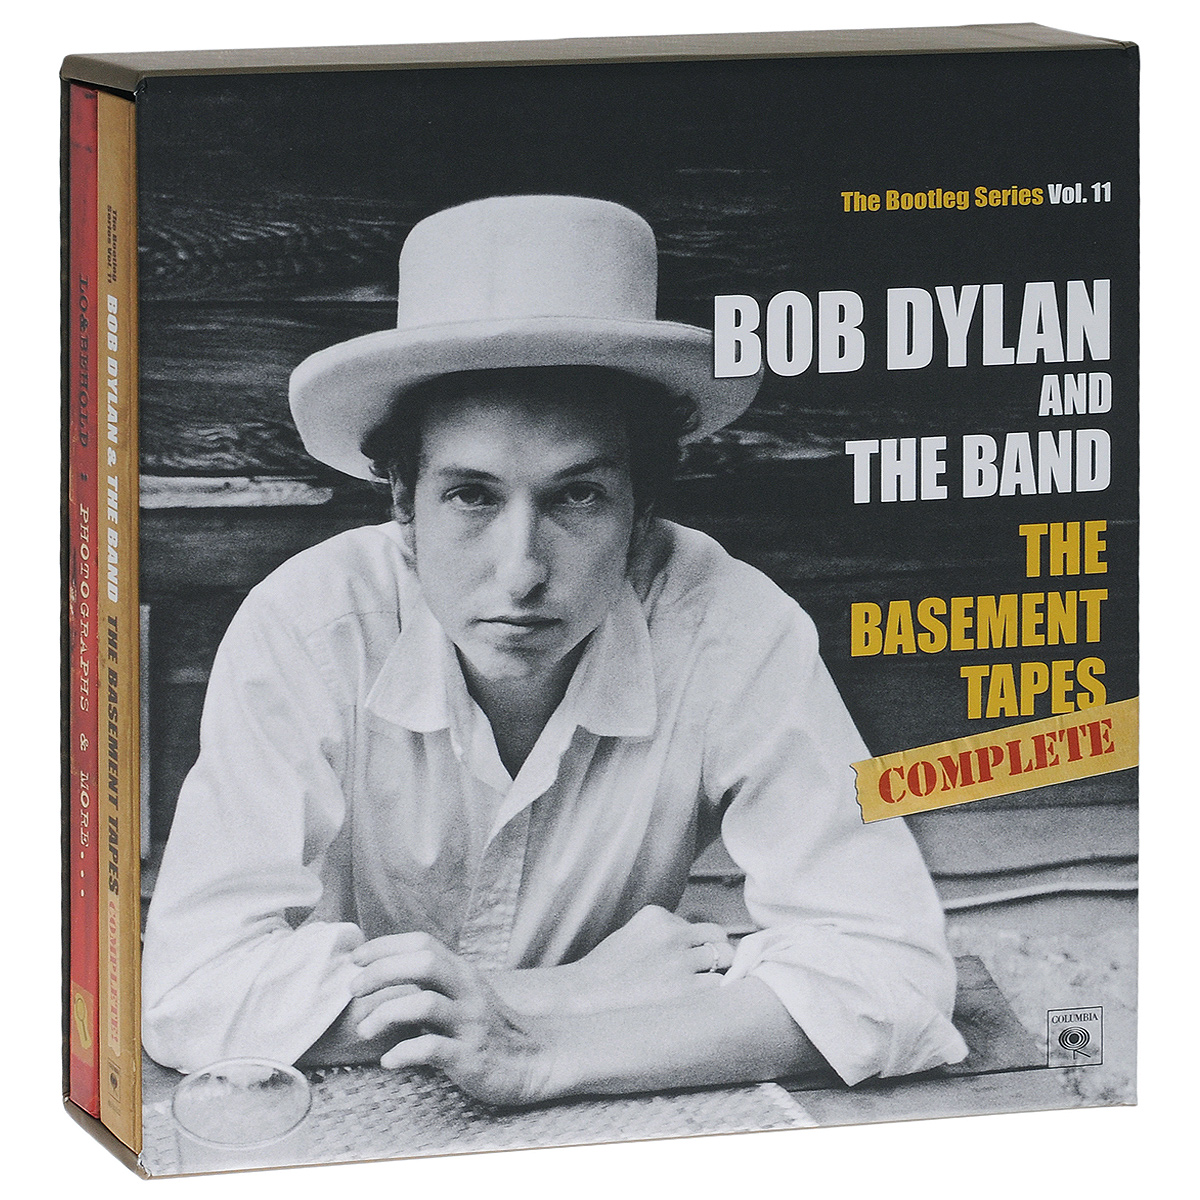 Bob Dylan And The Band Bob Dylan and The Band. The Bootleg Series Vol. 11: The Basement Tapes Complete. Limited Deluxe Edition (6 CD) the complete crumb comics vol 8